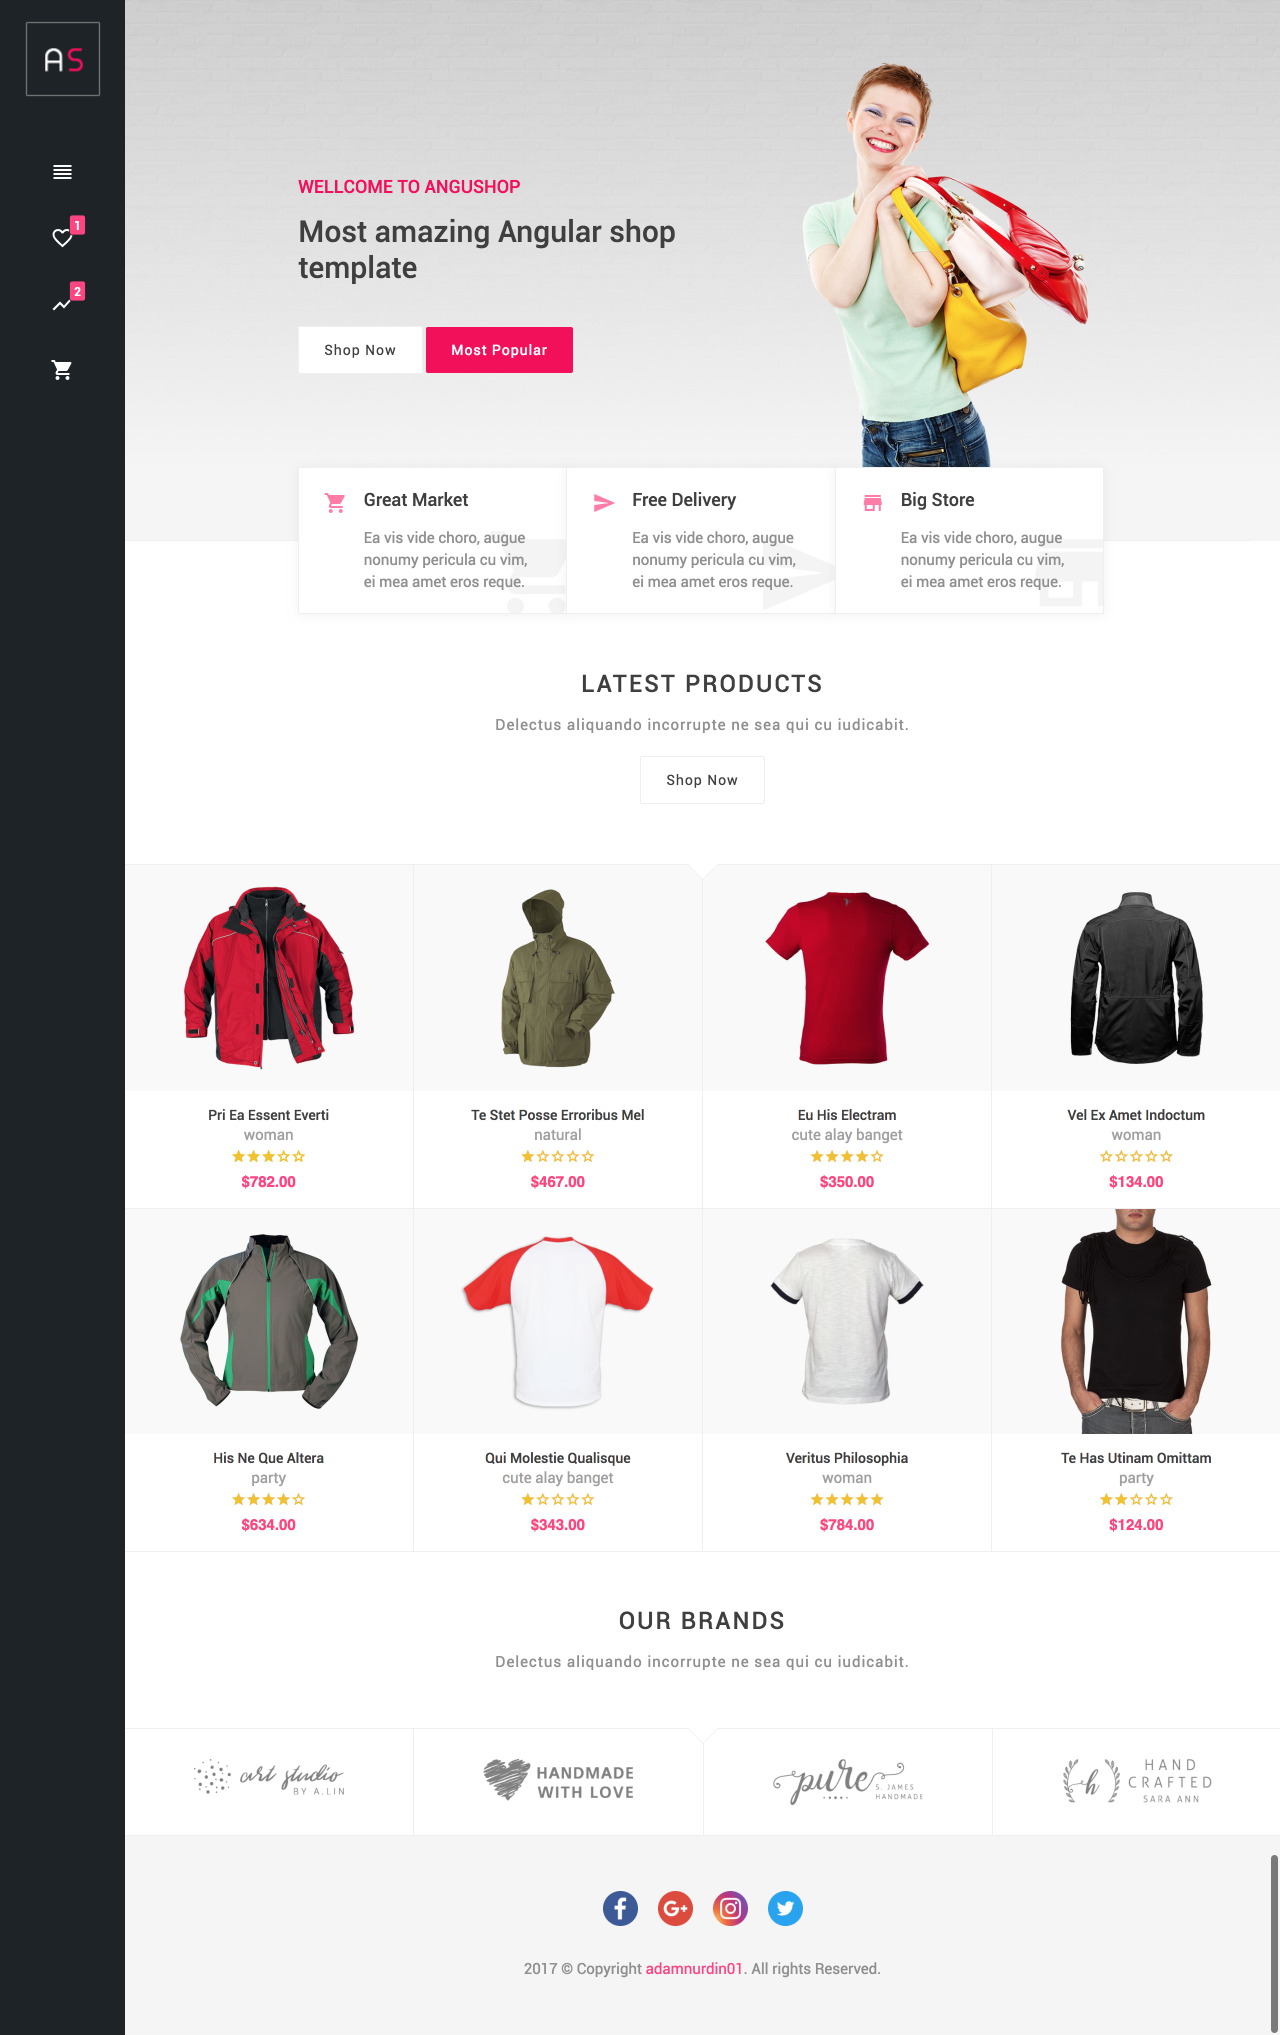 Angushop - Angular 8 Shop Template Material Design